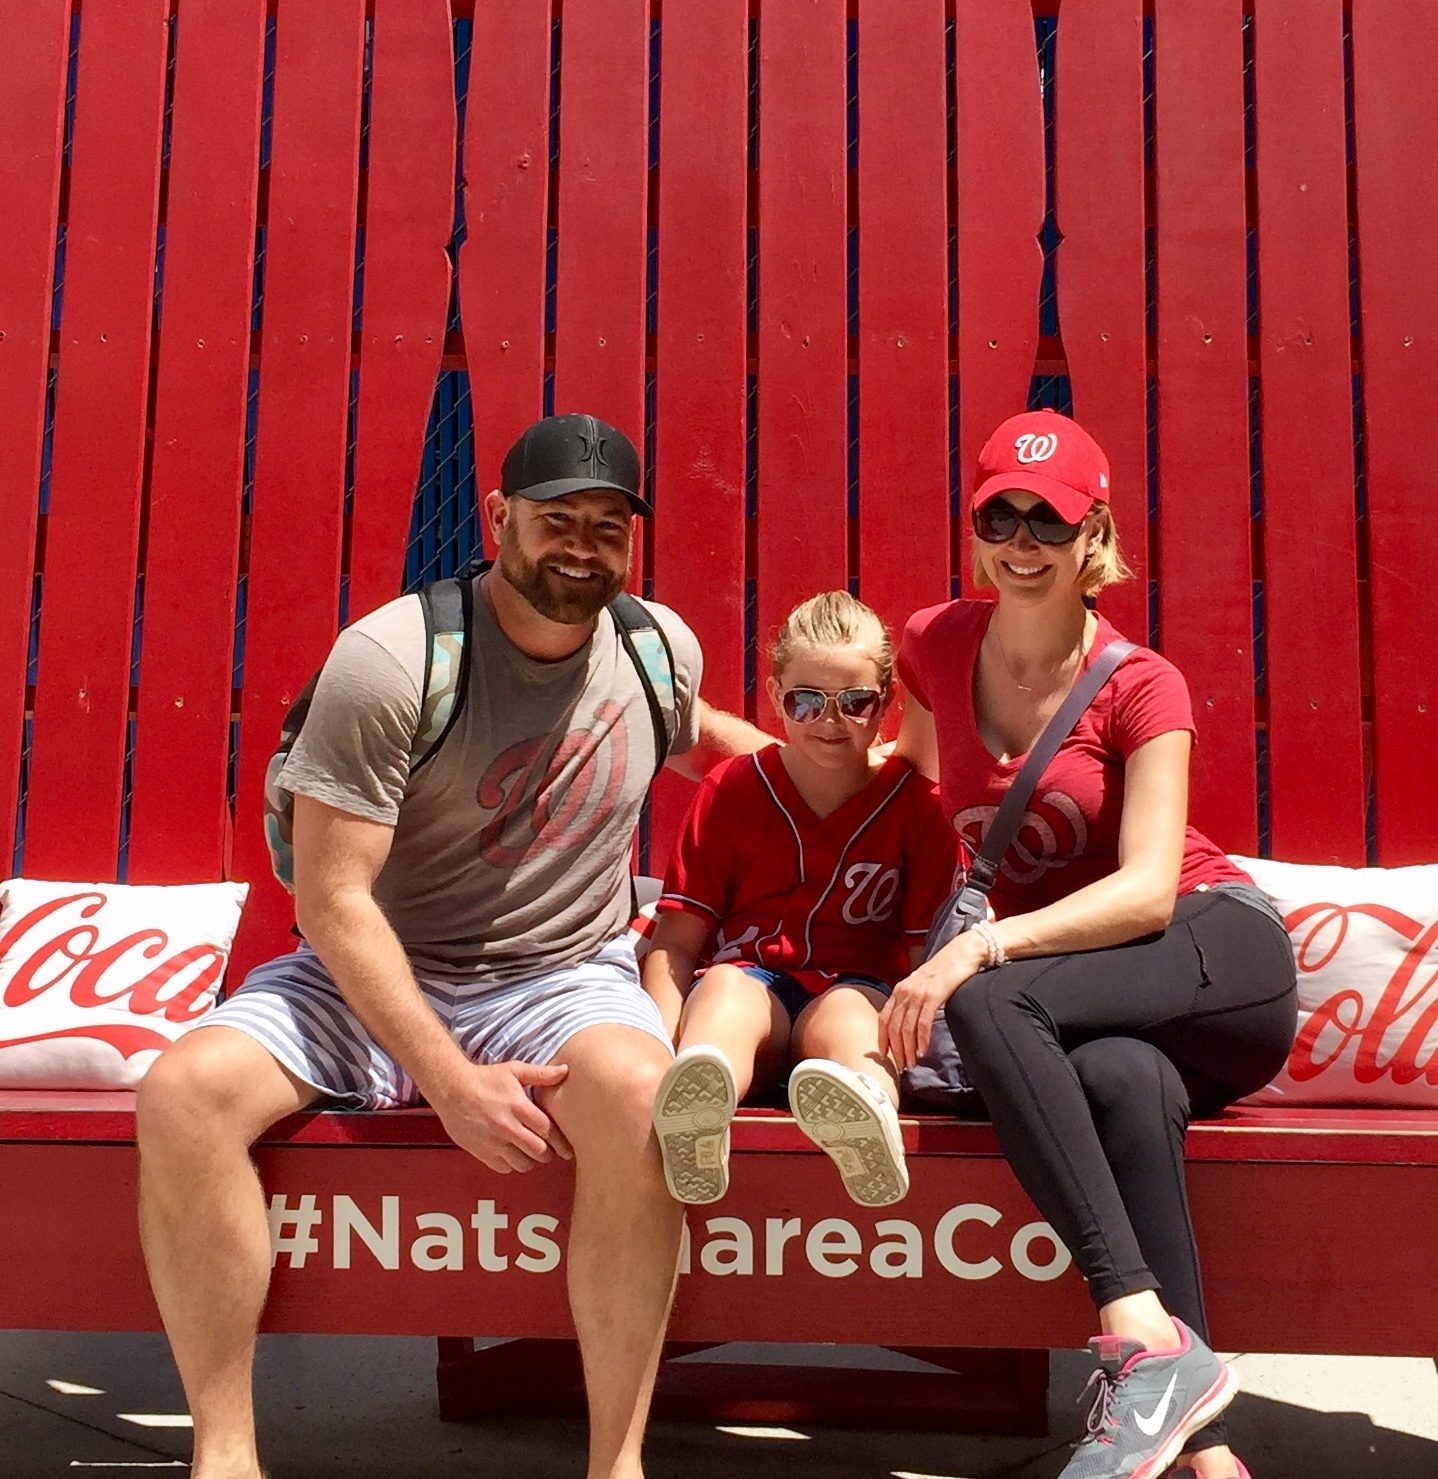 Eric Bross and family at Nationals game